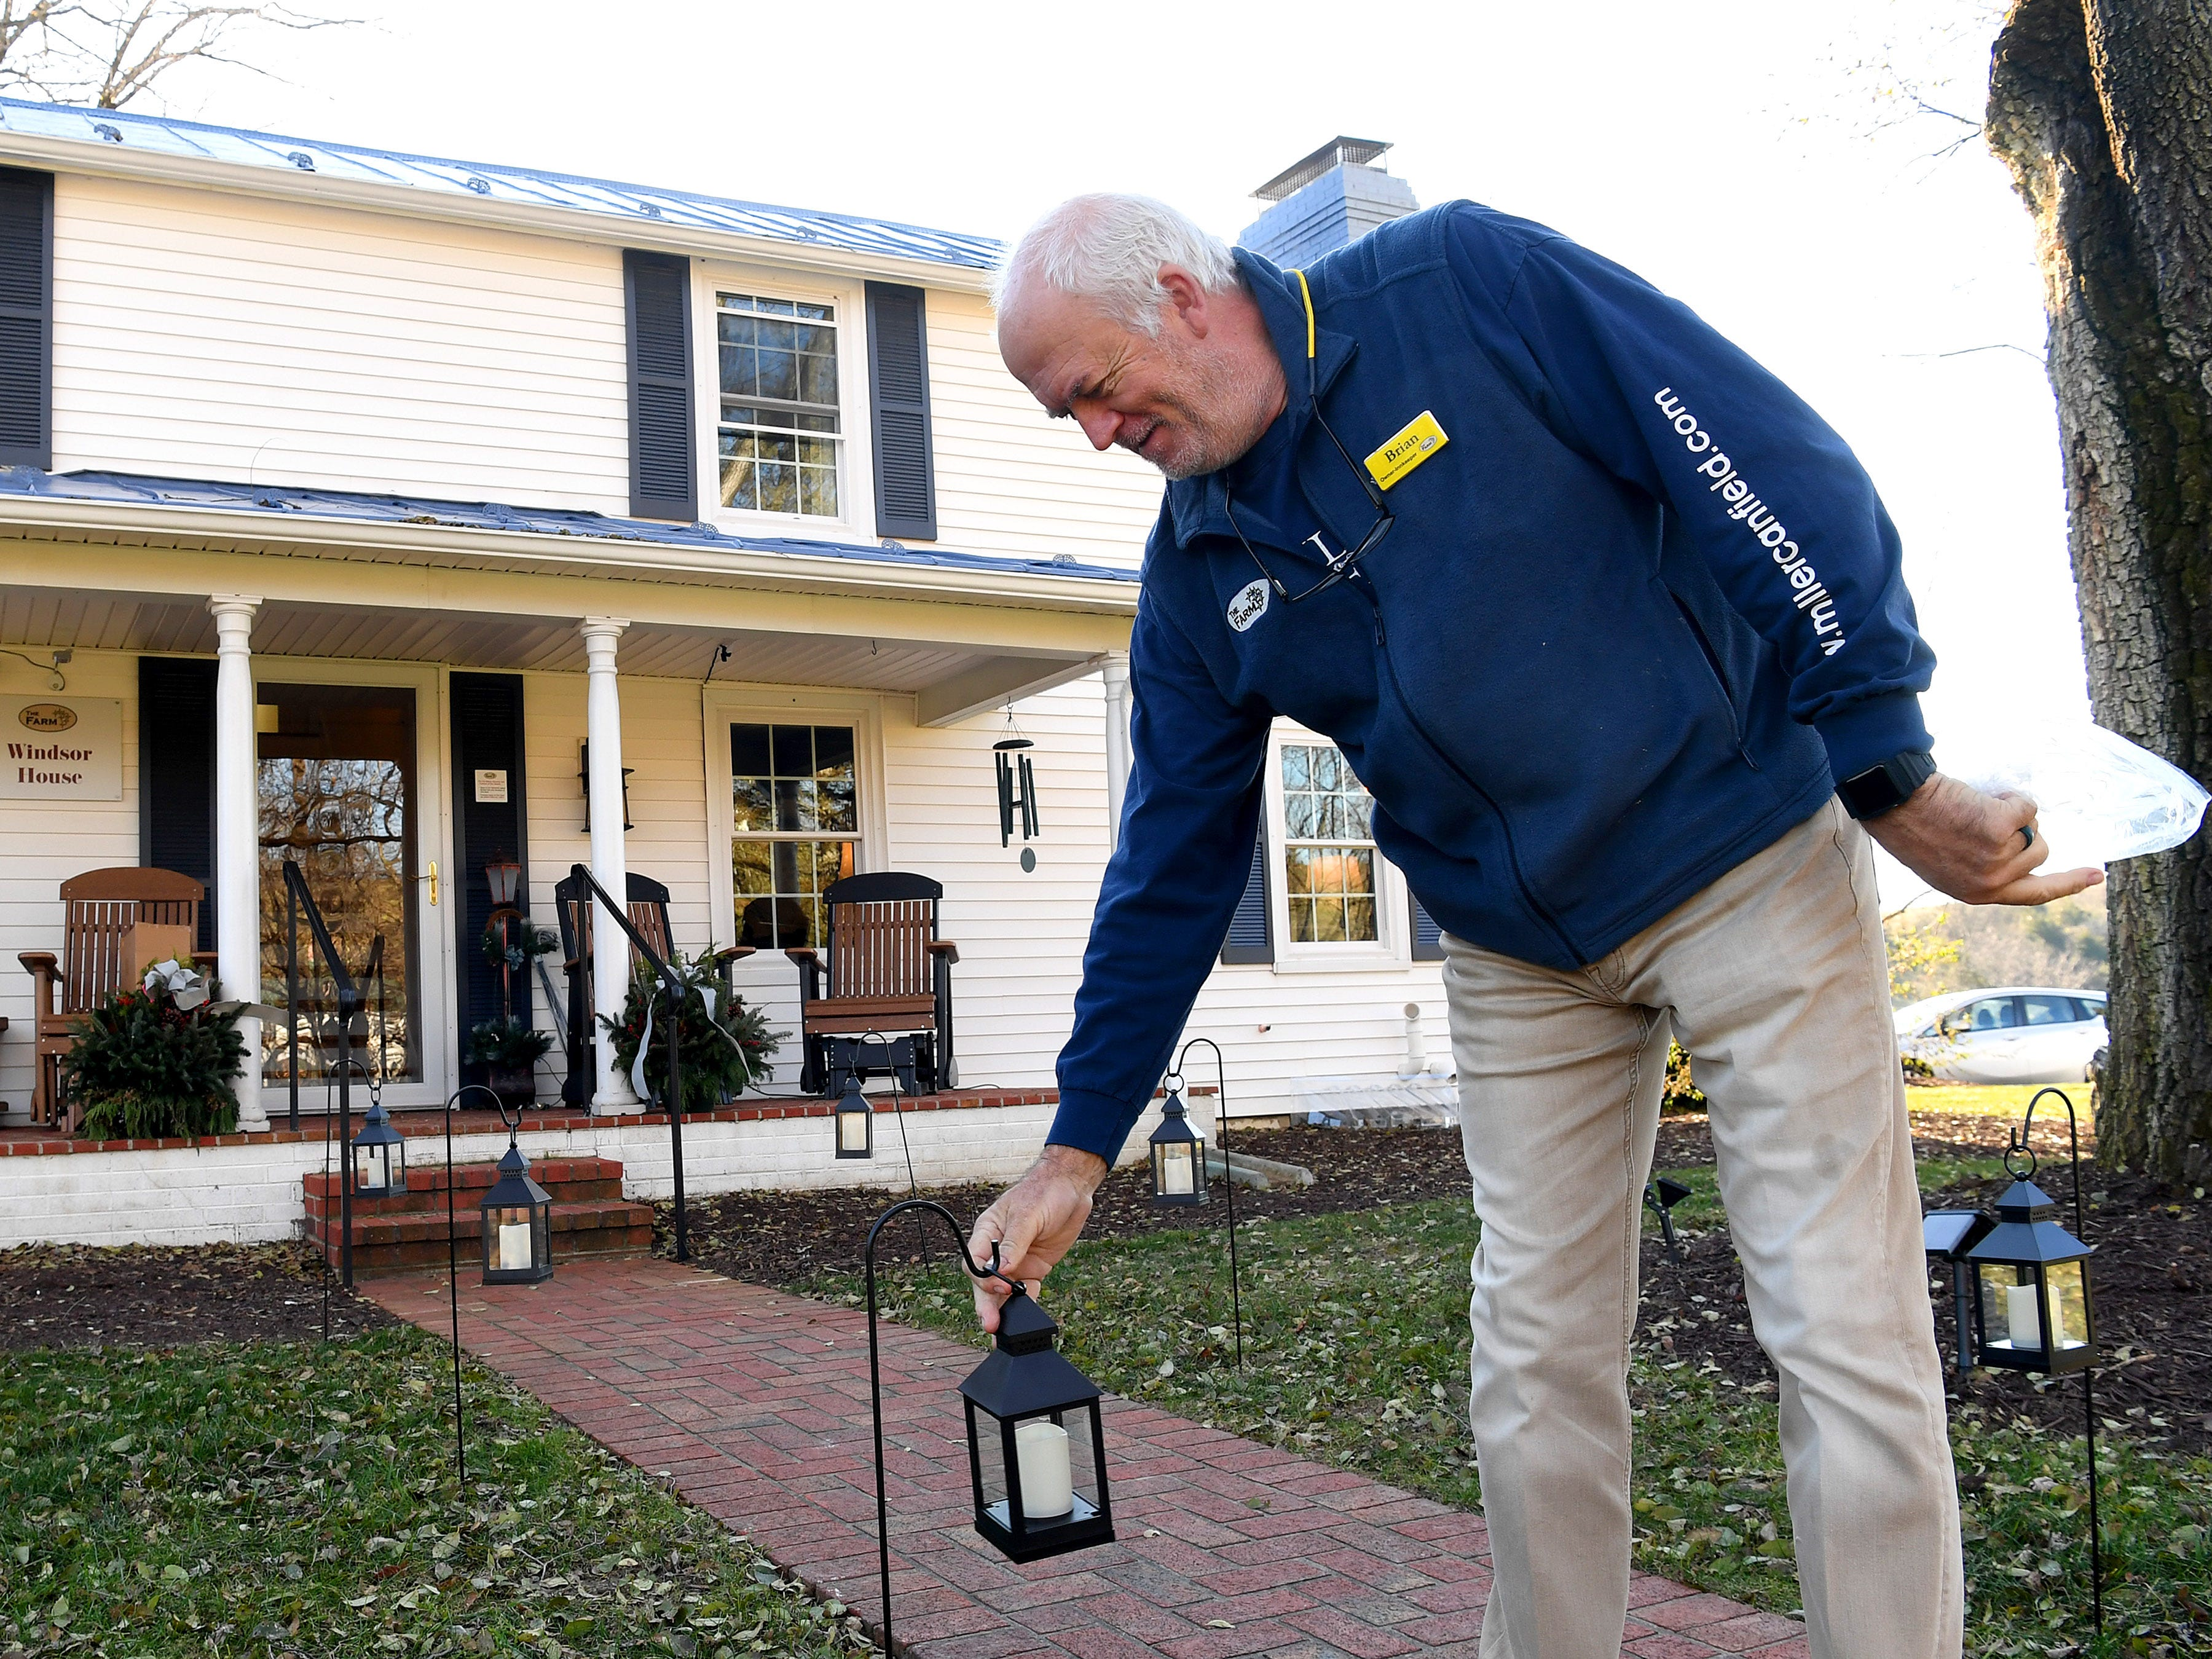 Co-owner and innkeeper Brian Westenberg hands lanterns along a walkway leading up to the front of the Inn at WestShire Farms in Staunton on Wednesday, Nov. 28, 2018.